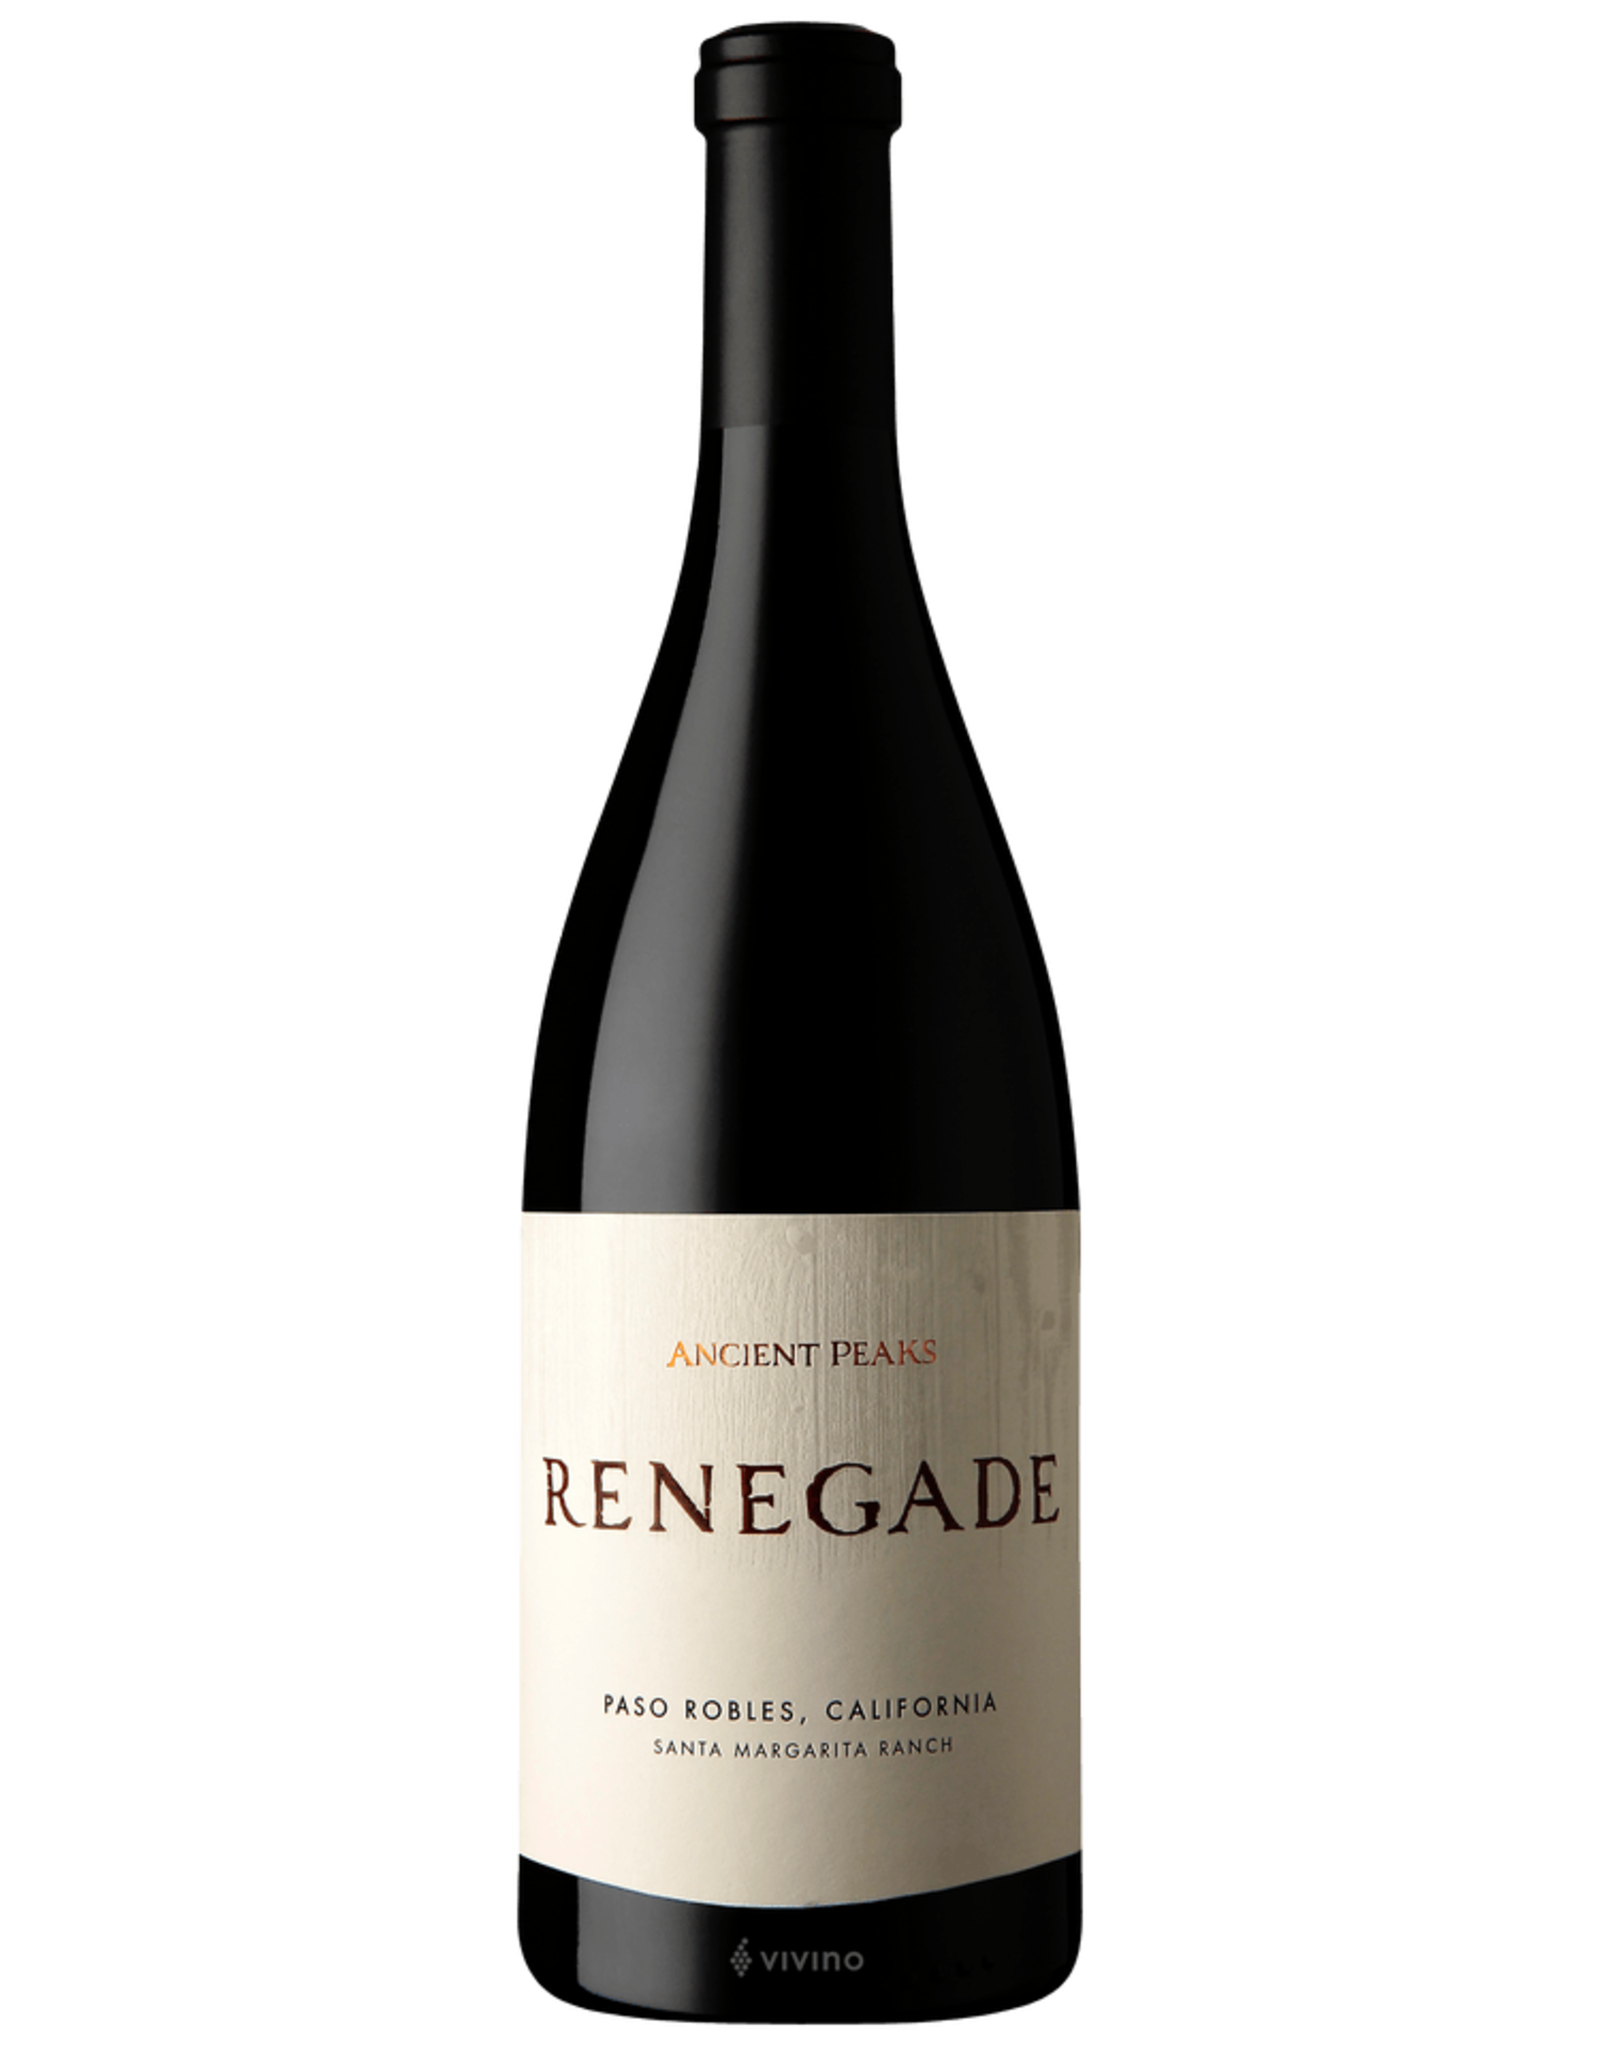 Ancient Peaks Renegade Paso Robles 2016